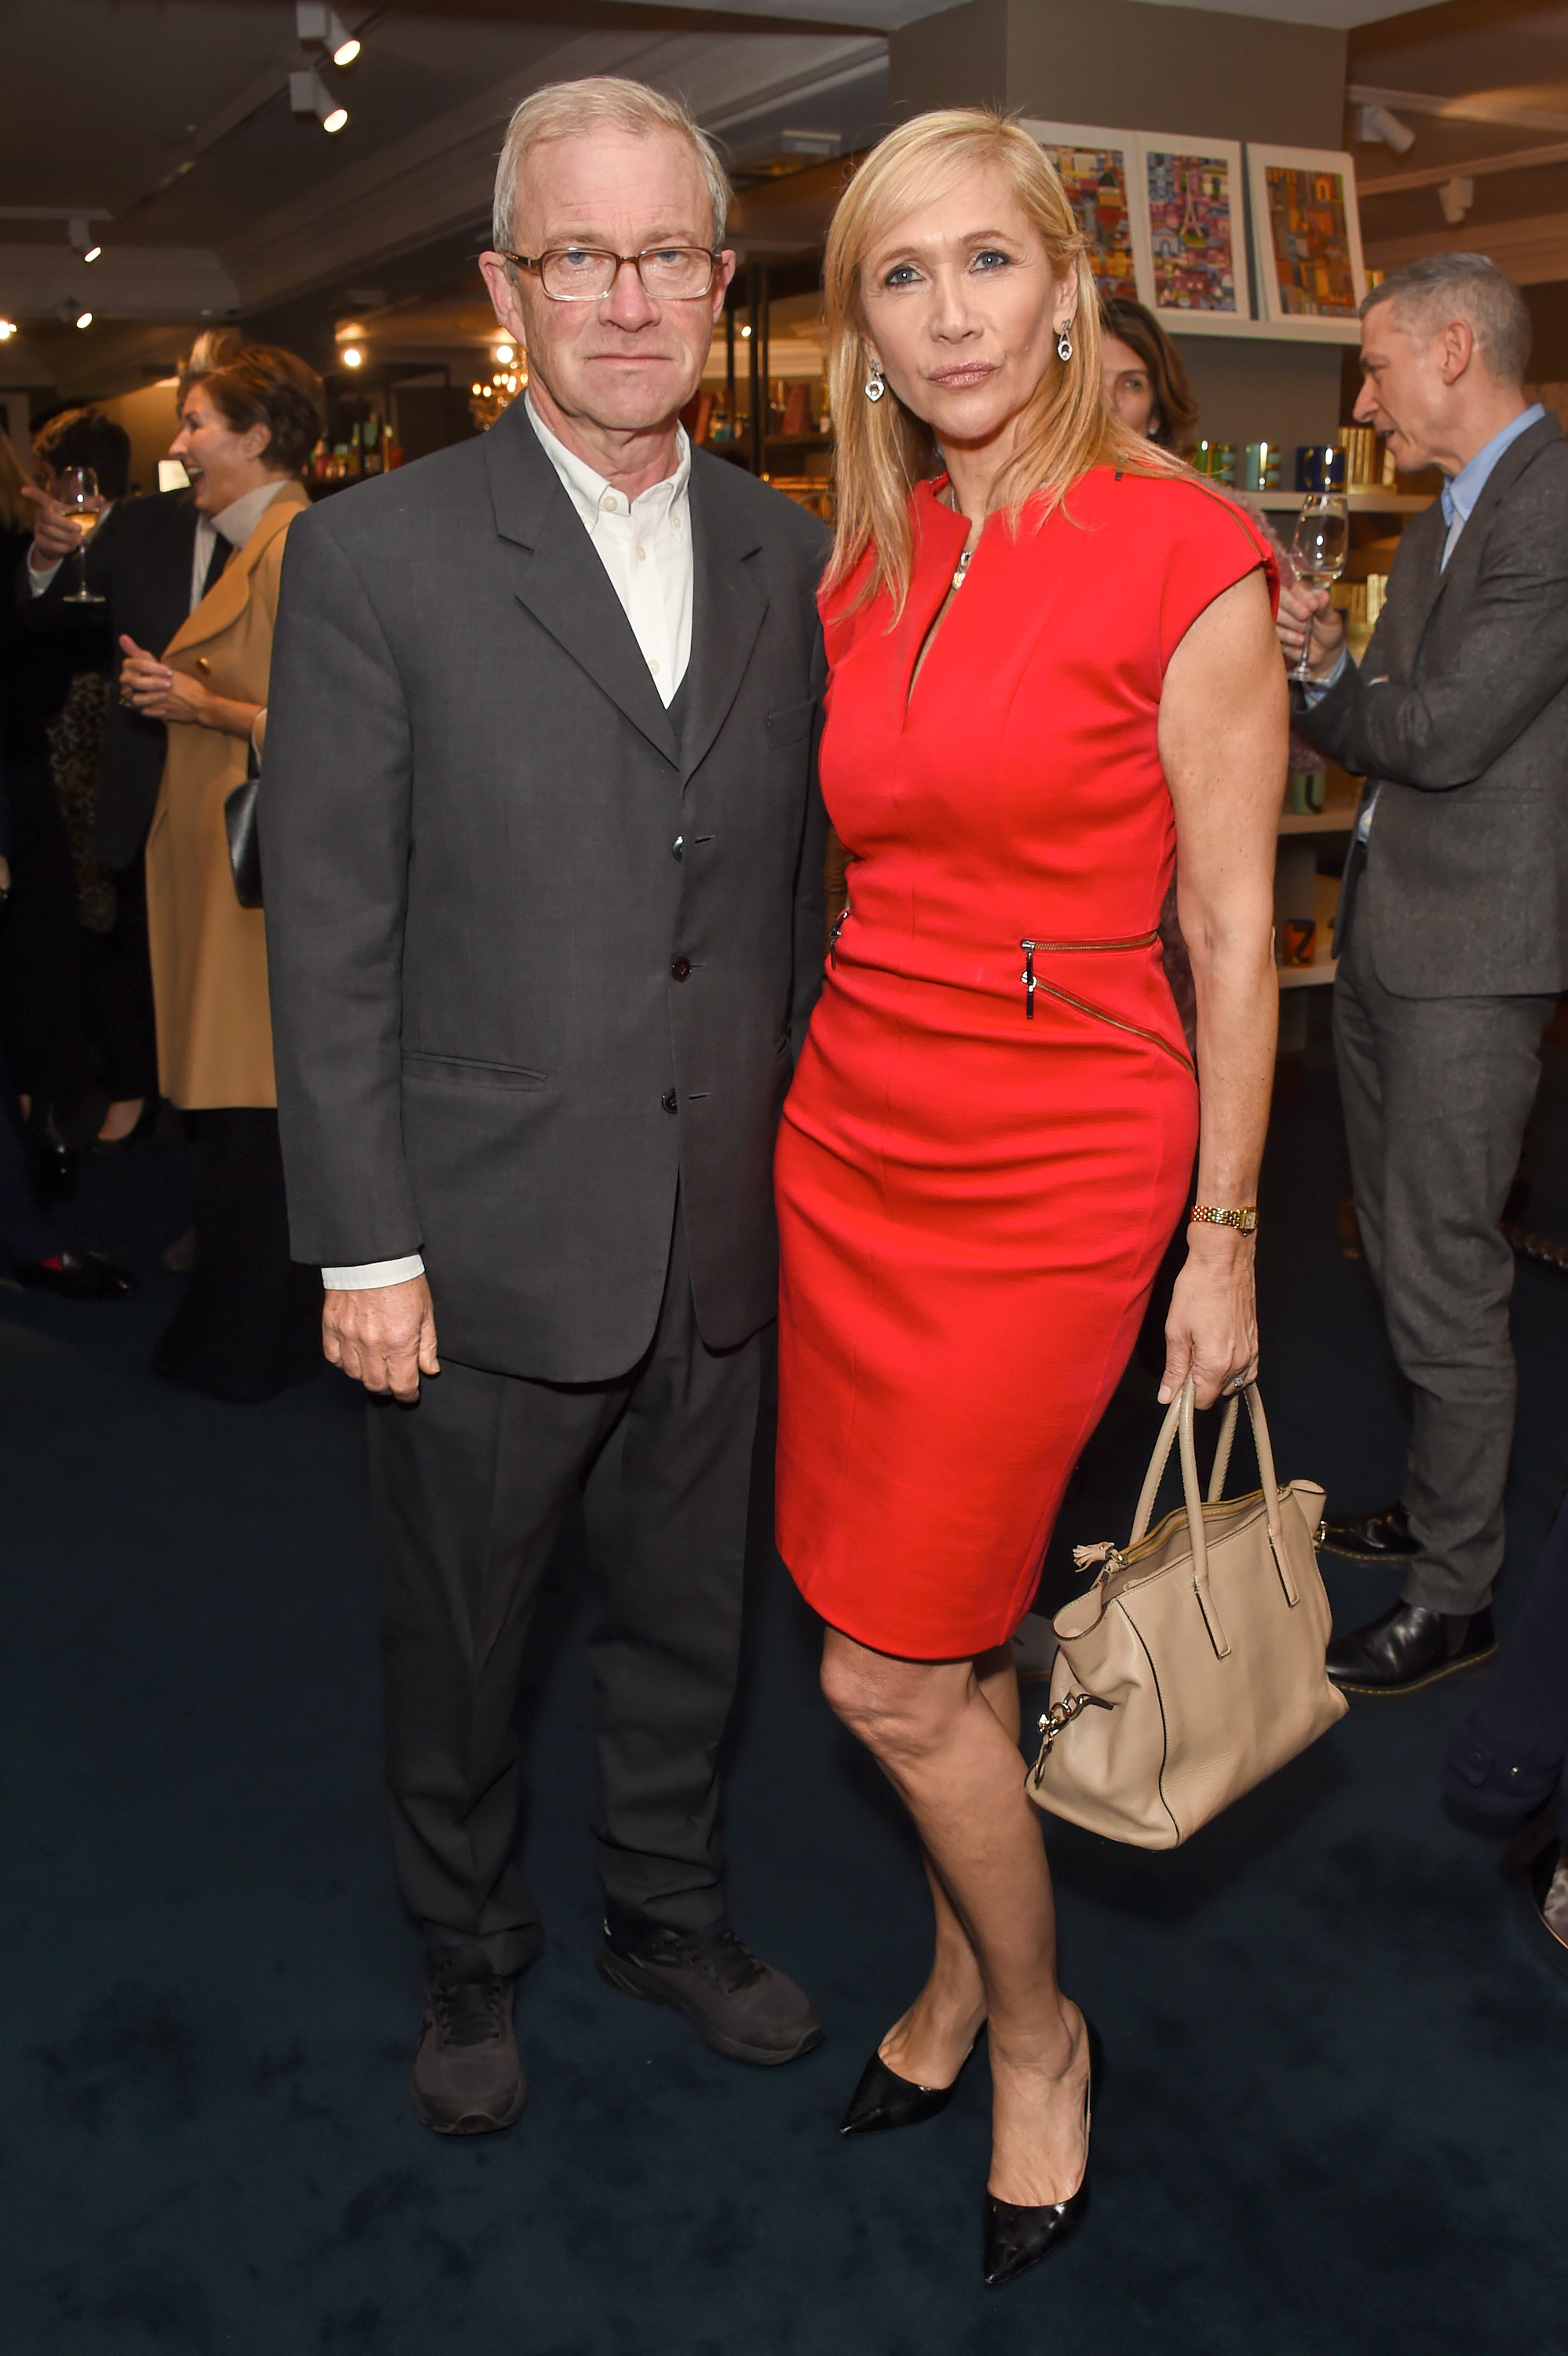 Harry Enfield and Tania Bryer. Courtesy of Dave Benett.